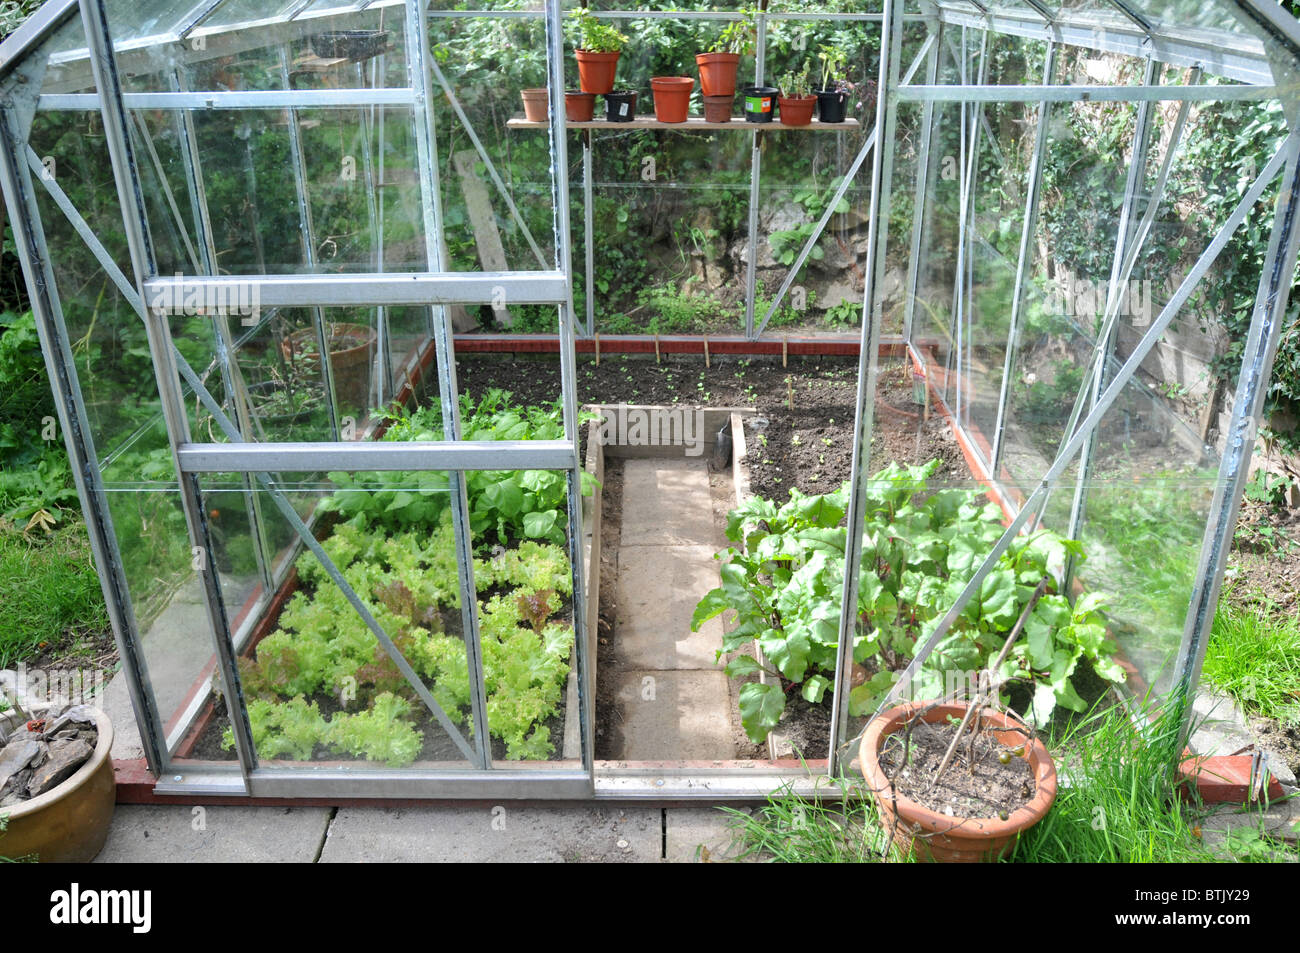 Sensational A Greenhouse Growing Salad Leaves With Seedlings Growing In Download Free Architecture Designs Ogrambritishbridgeorg